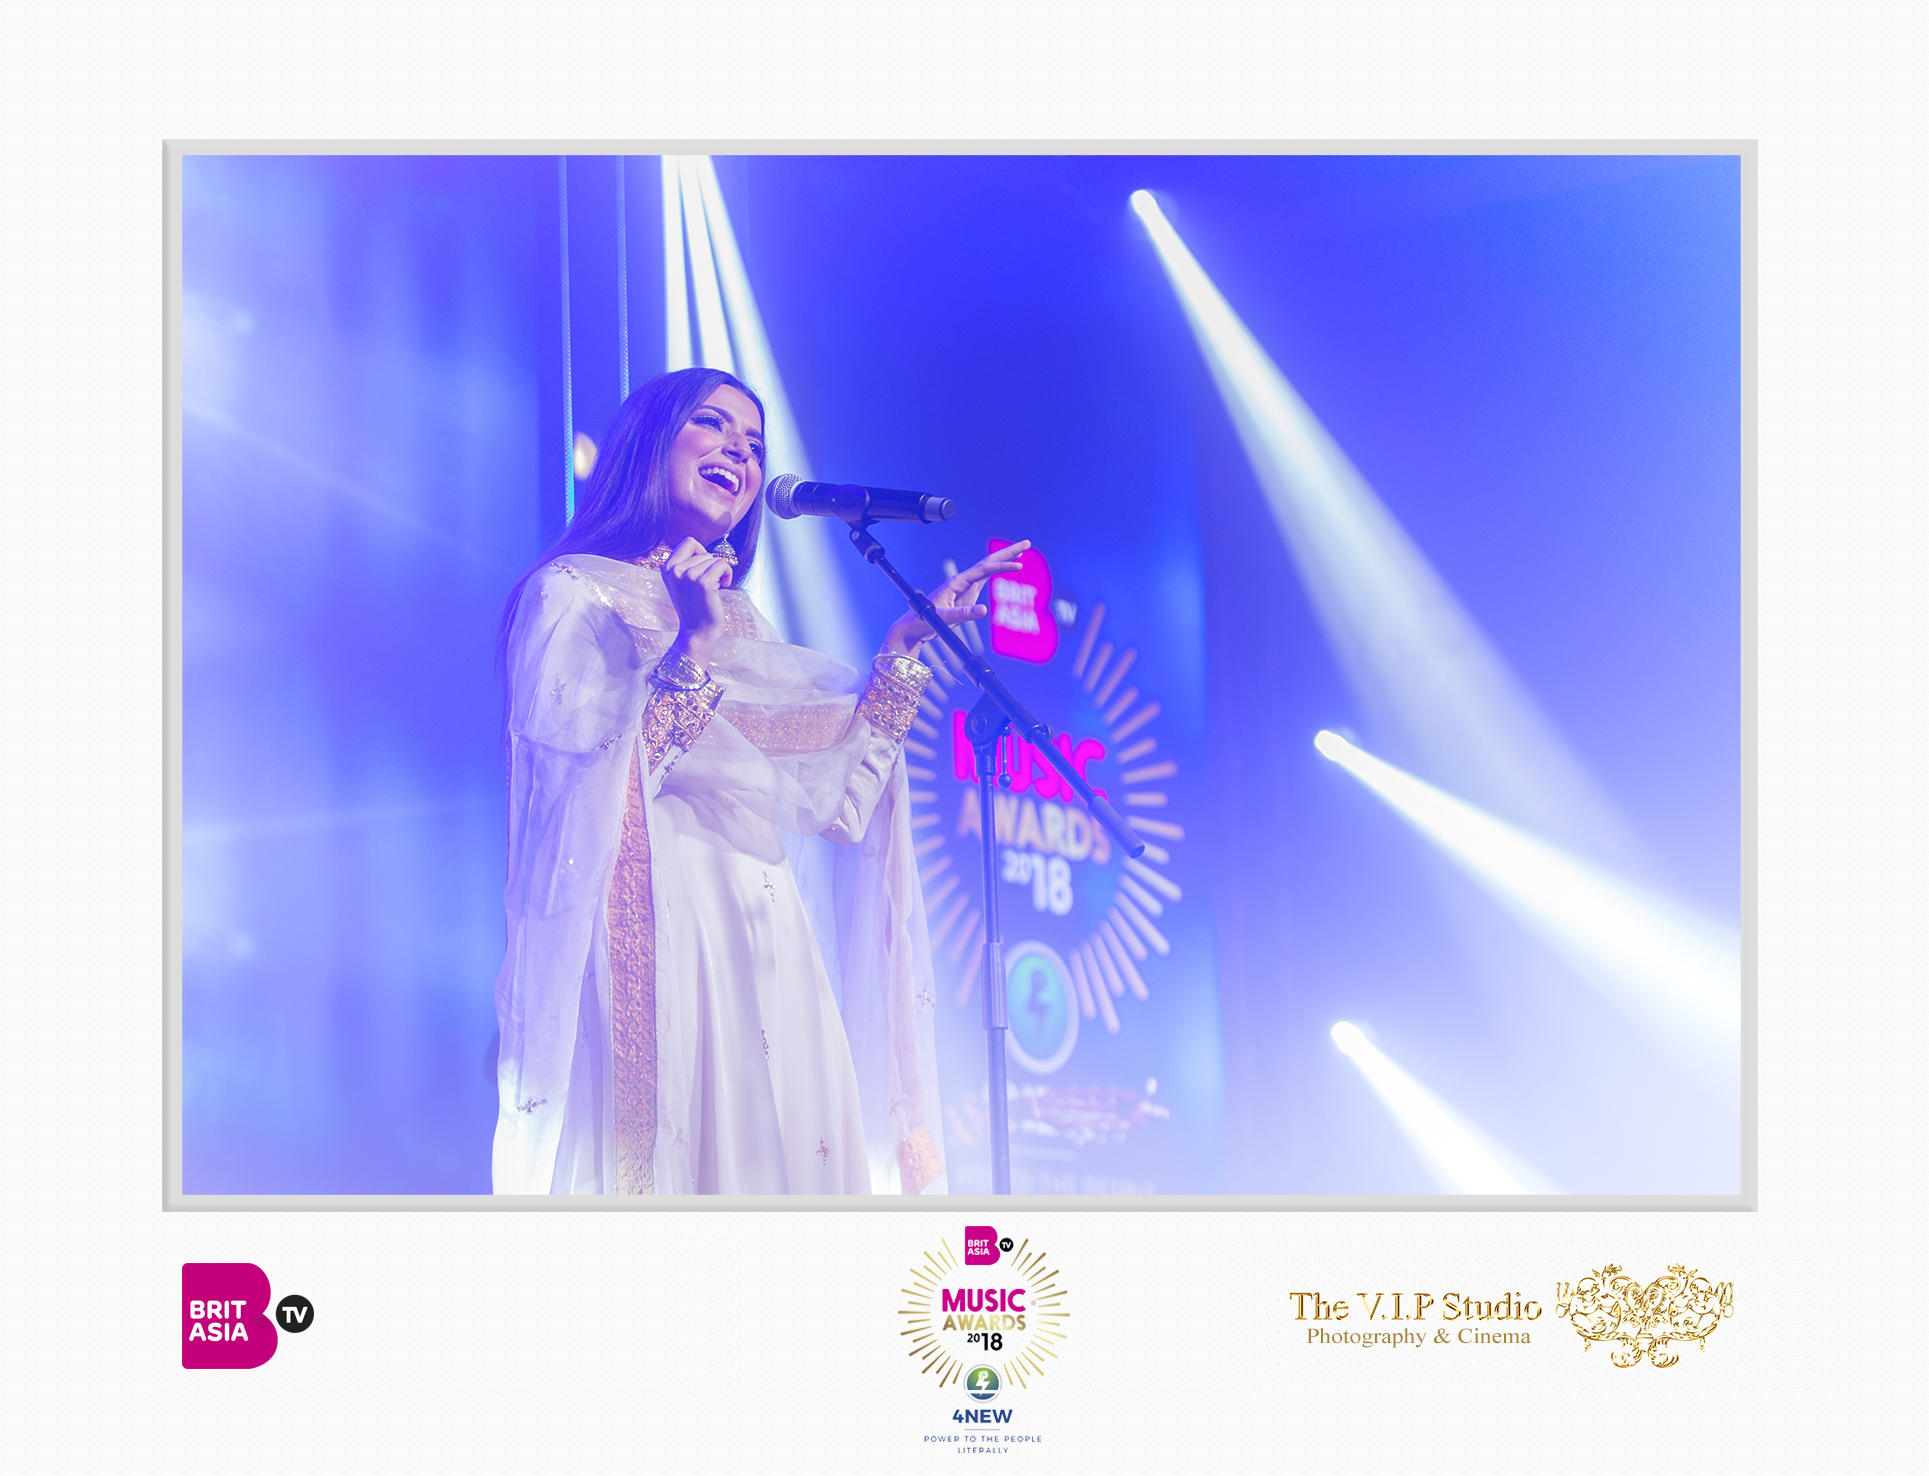 The VIP Studio - BritAsia Music Awards - Nimrat Khaira